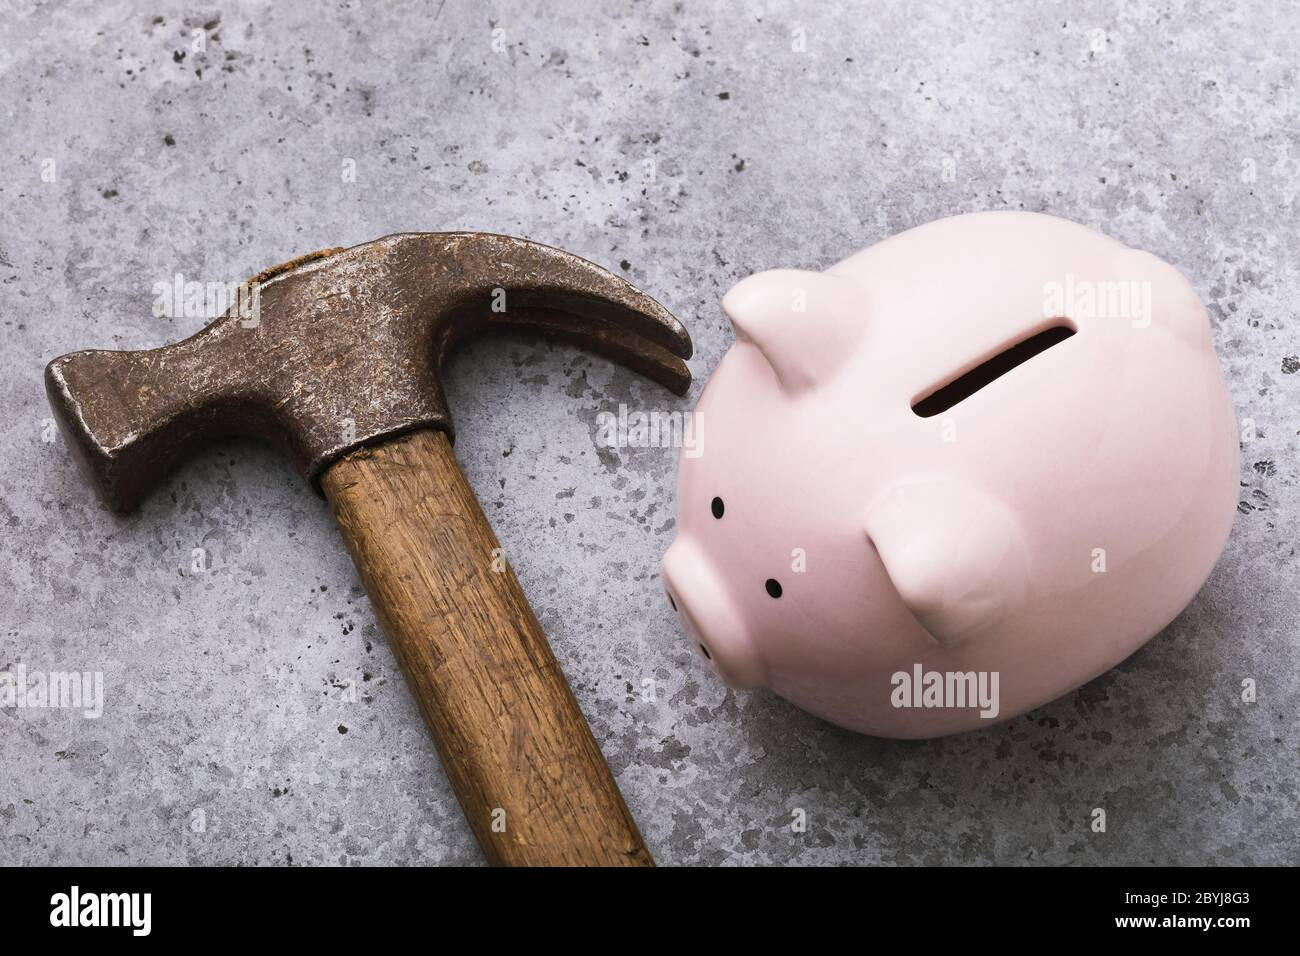 Pink piggy bank and hammer on the table, closeup. Crisis concept Stock Photo